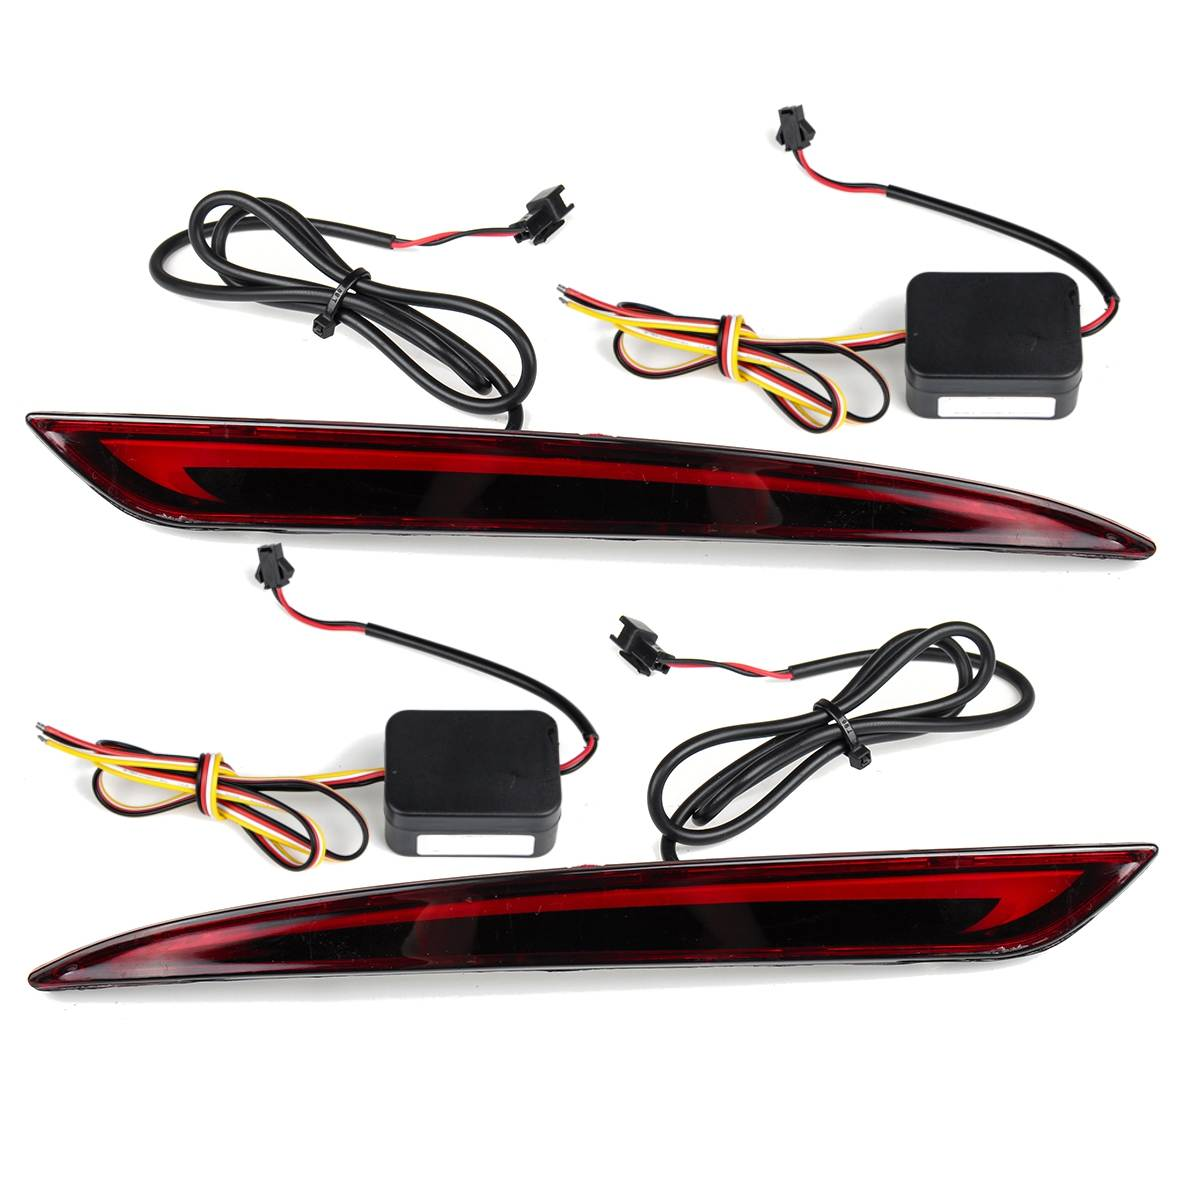 Hot 1 Pair 3 Function LED Rear Bumper Reflector Light For Ford Mondeo Fusion 2013 2014 2015 2016 2017 2018 Car DRL Brake Turn si